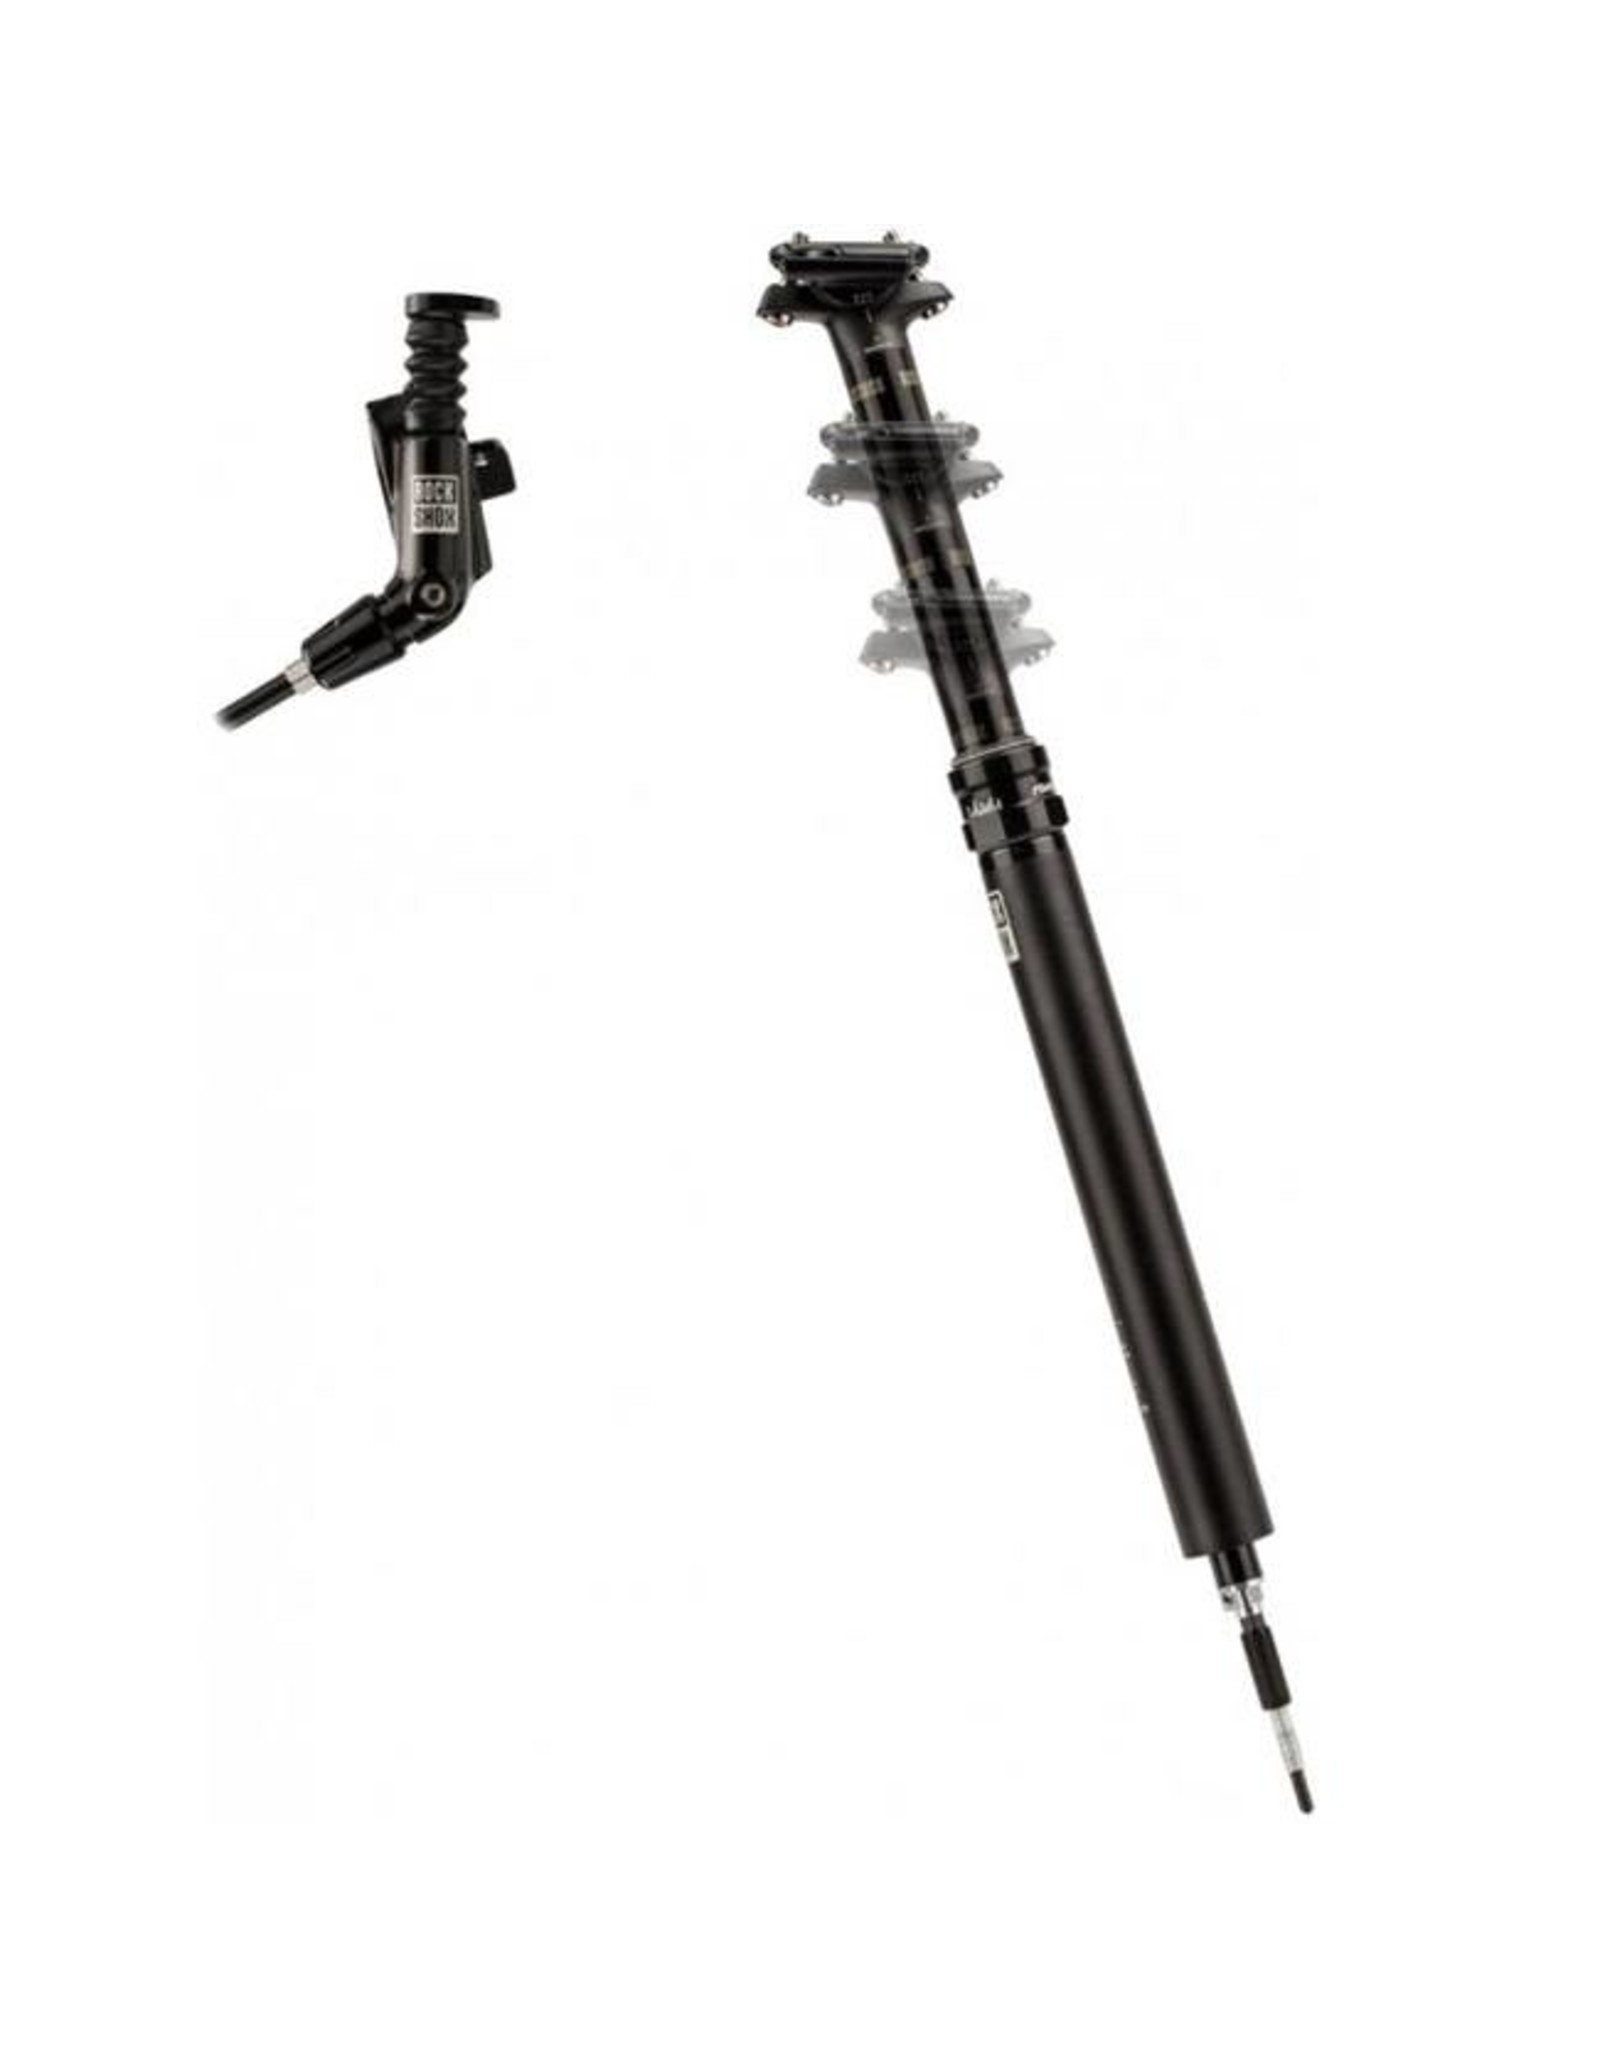 Rockshox RockShox Reverb Stealth 31.6 x 340mm Dropper Post, 100mm Travel, MMX Left, B1